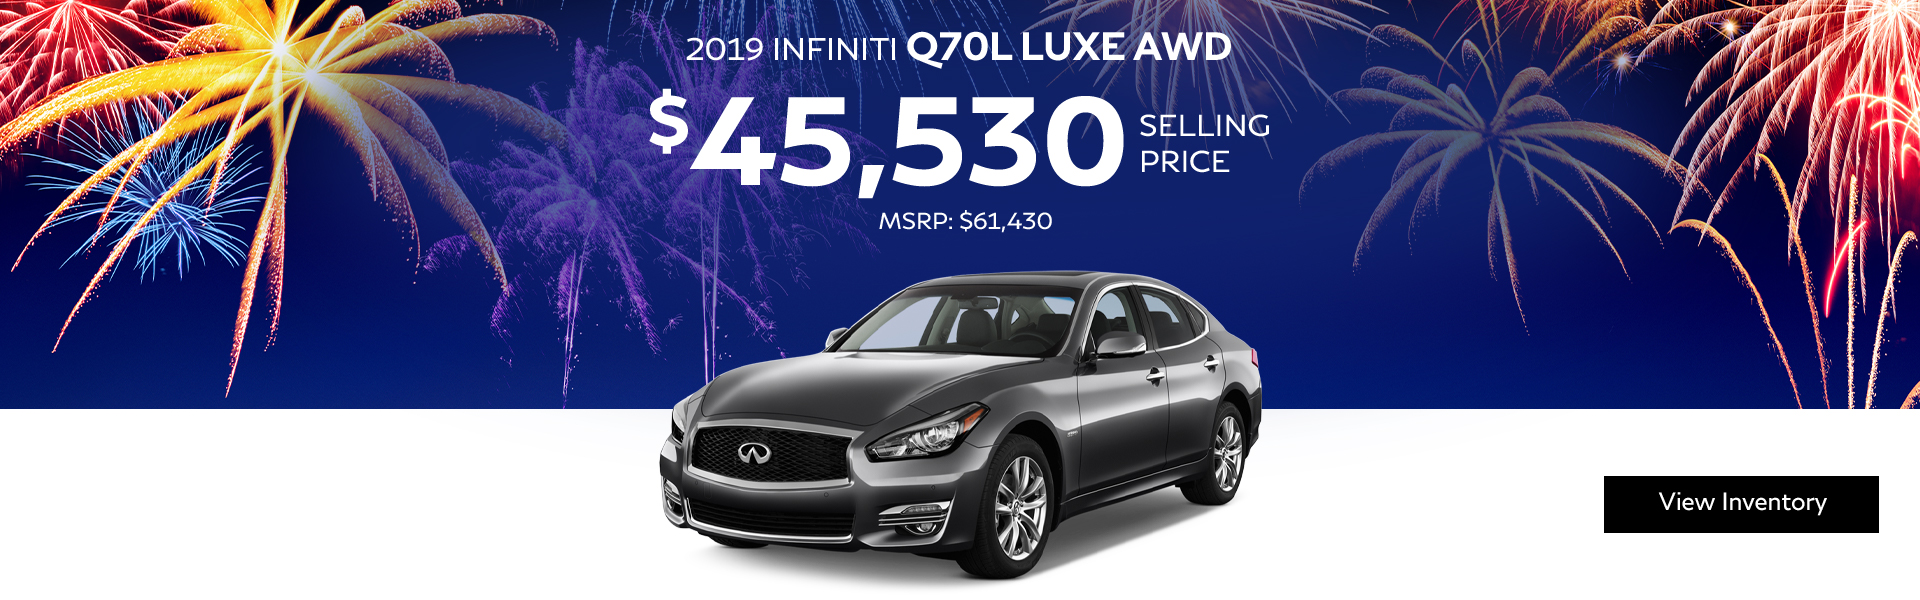 Q70 - Purchase offer